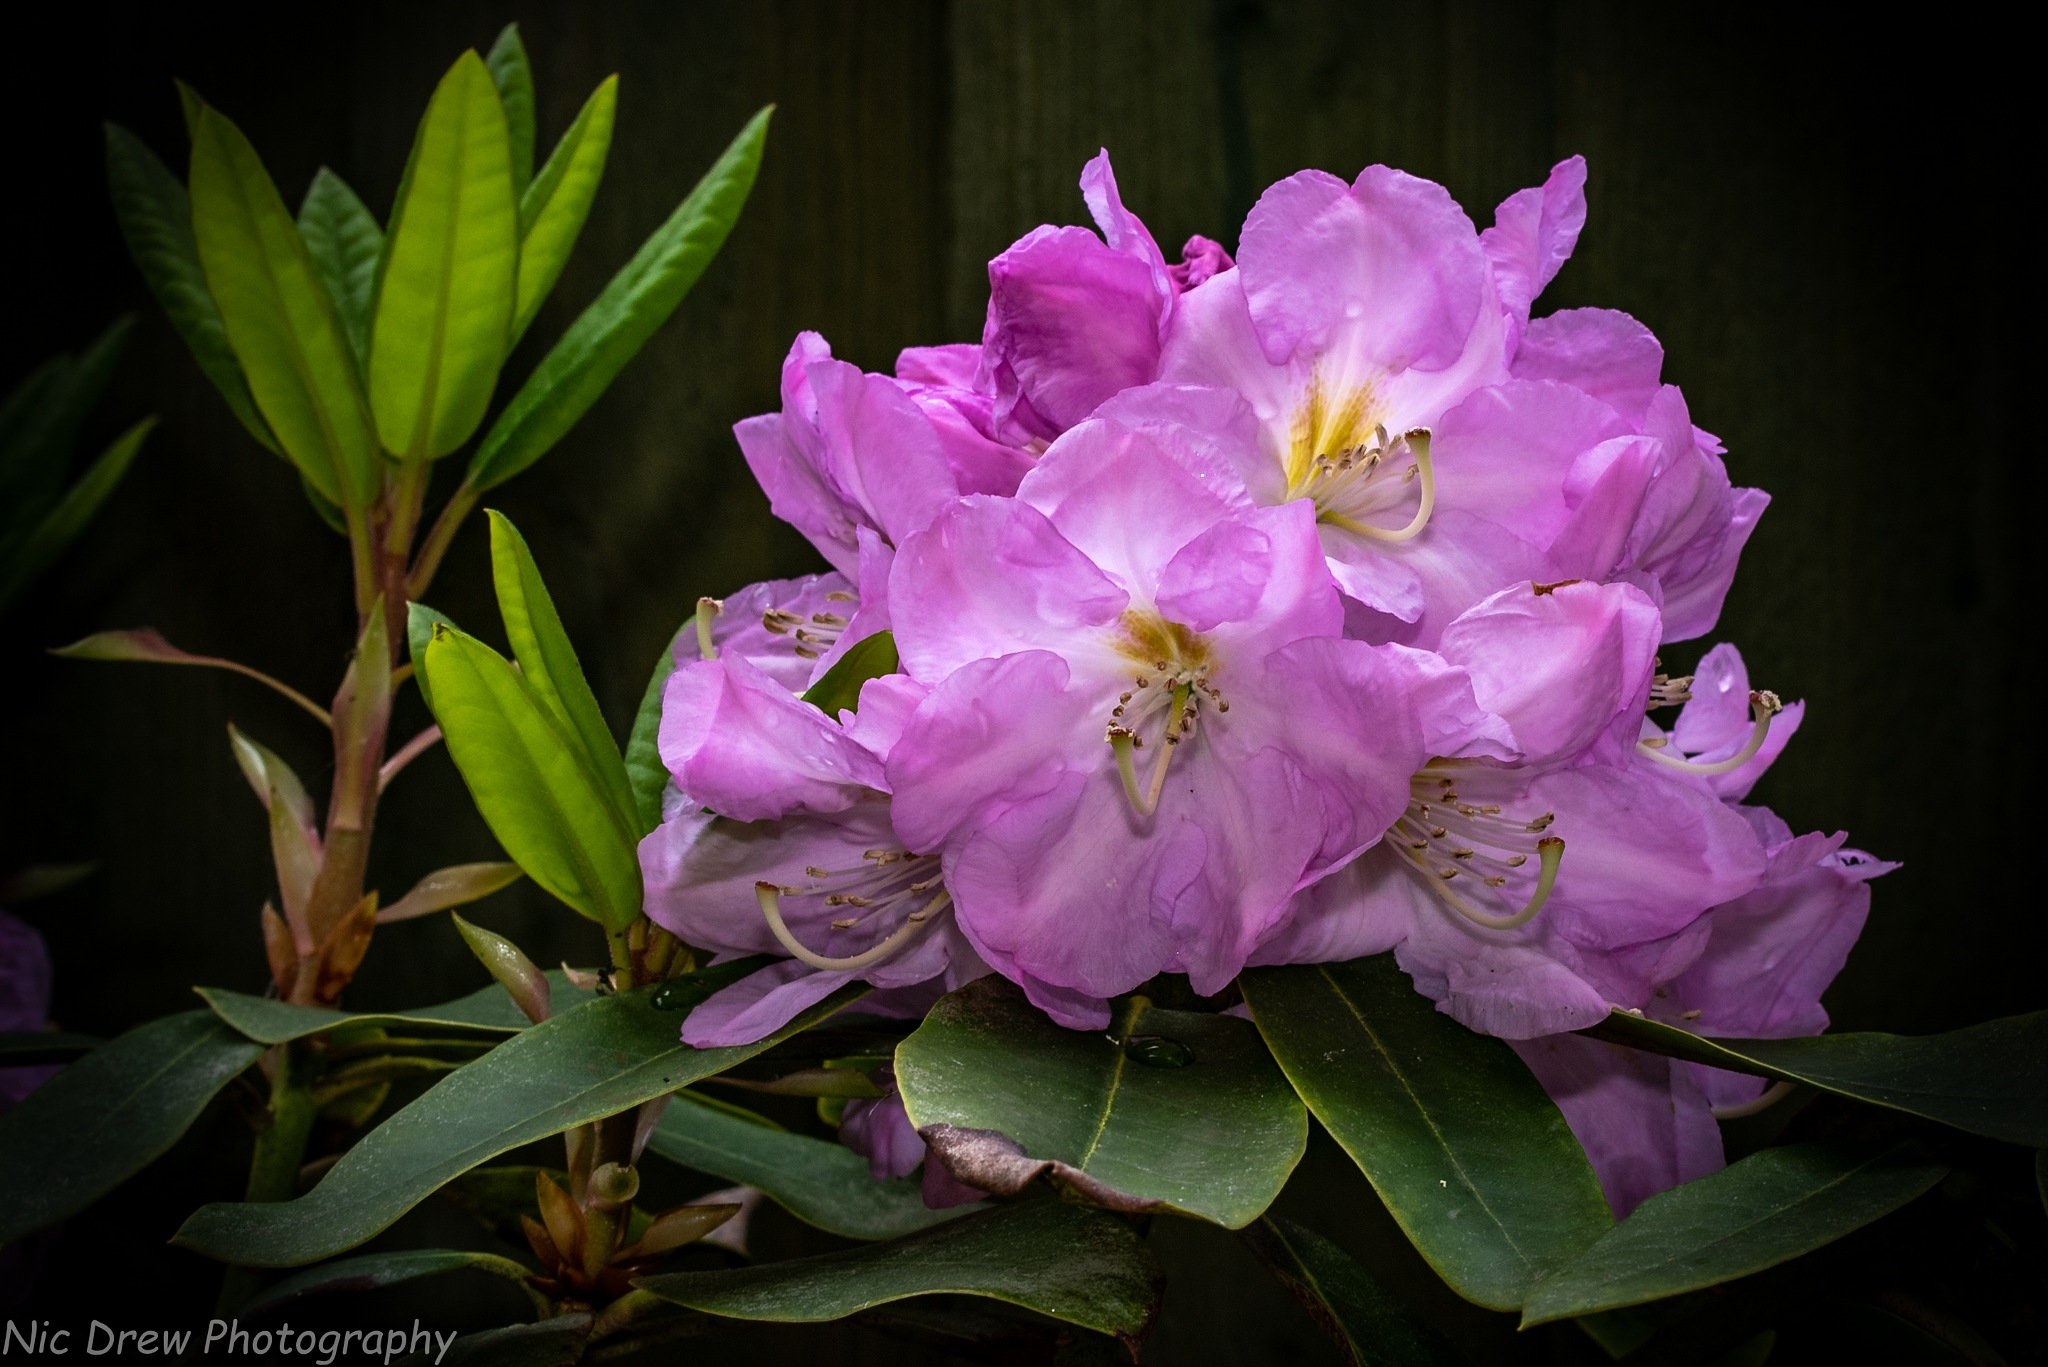 Rhododendron by Nic Drew